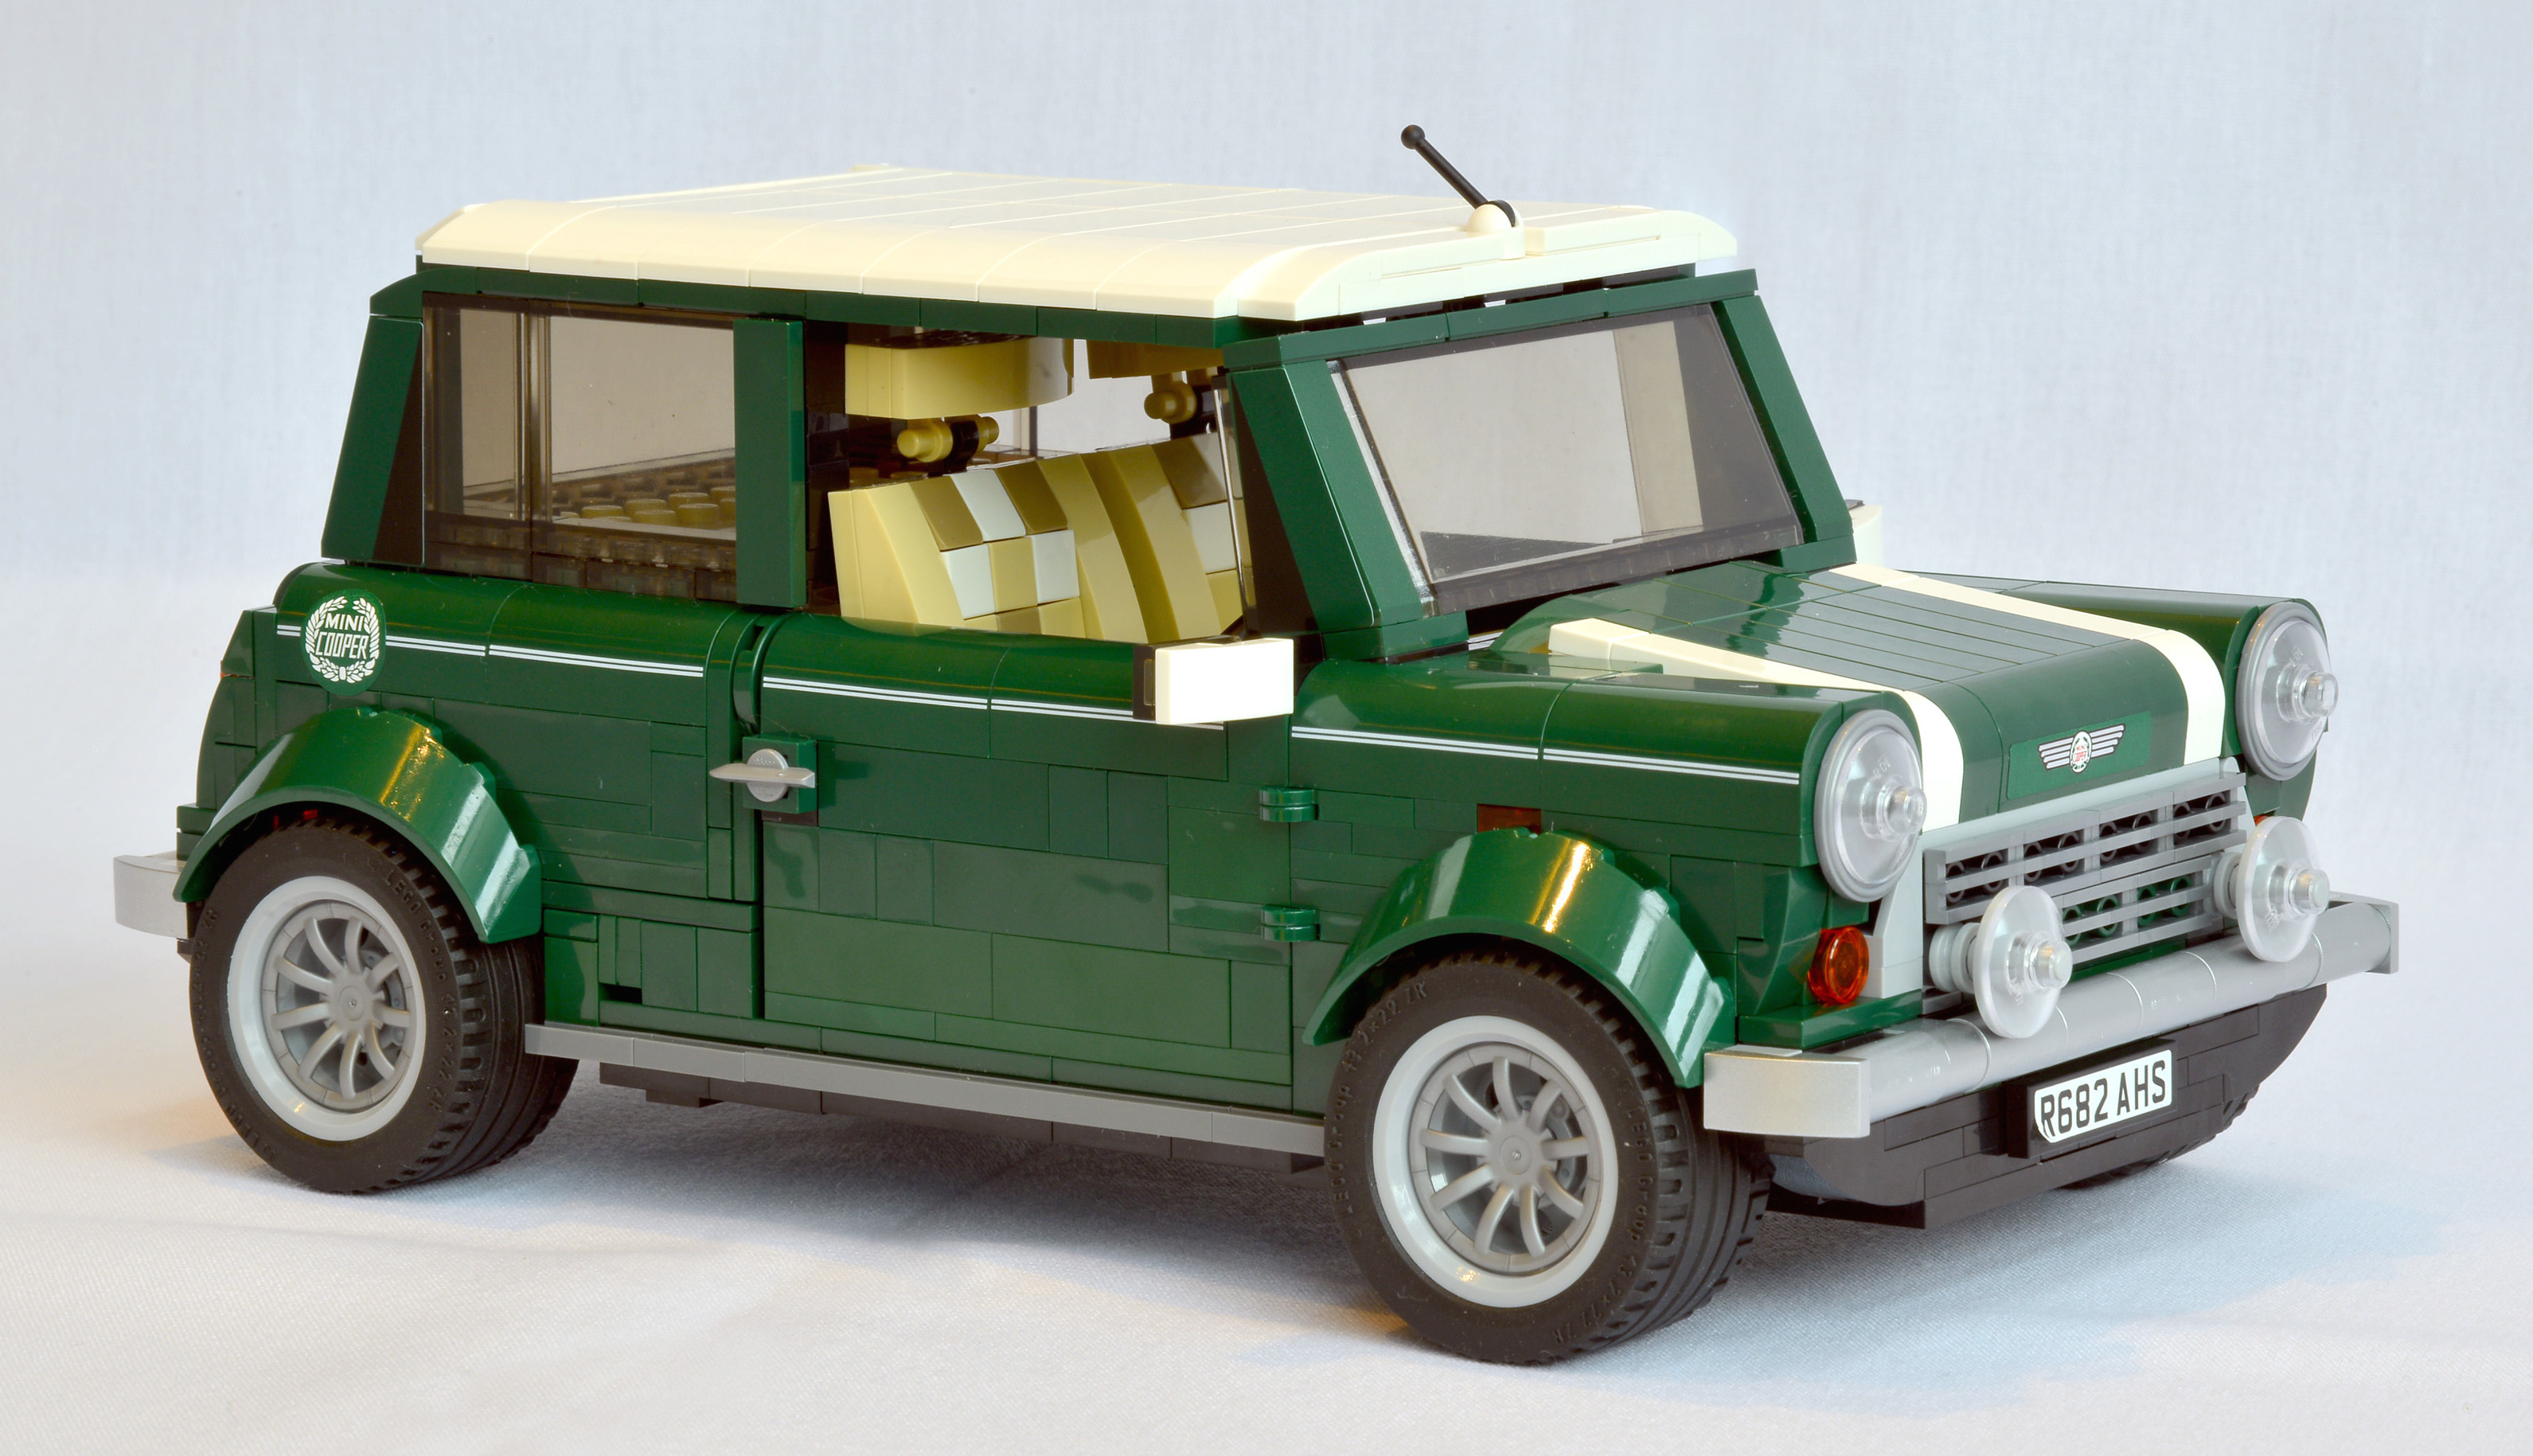 Lego Mini Cooper The Little Classic Goes Plastic